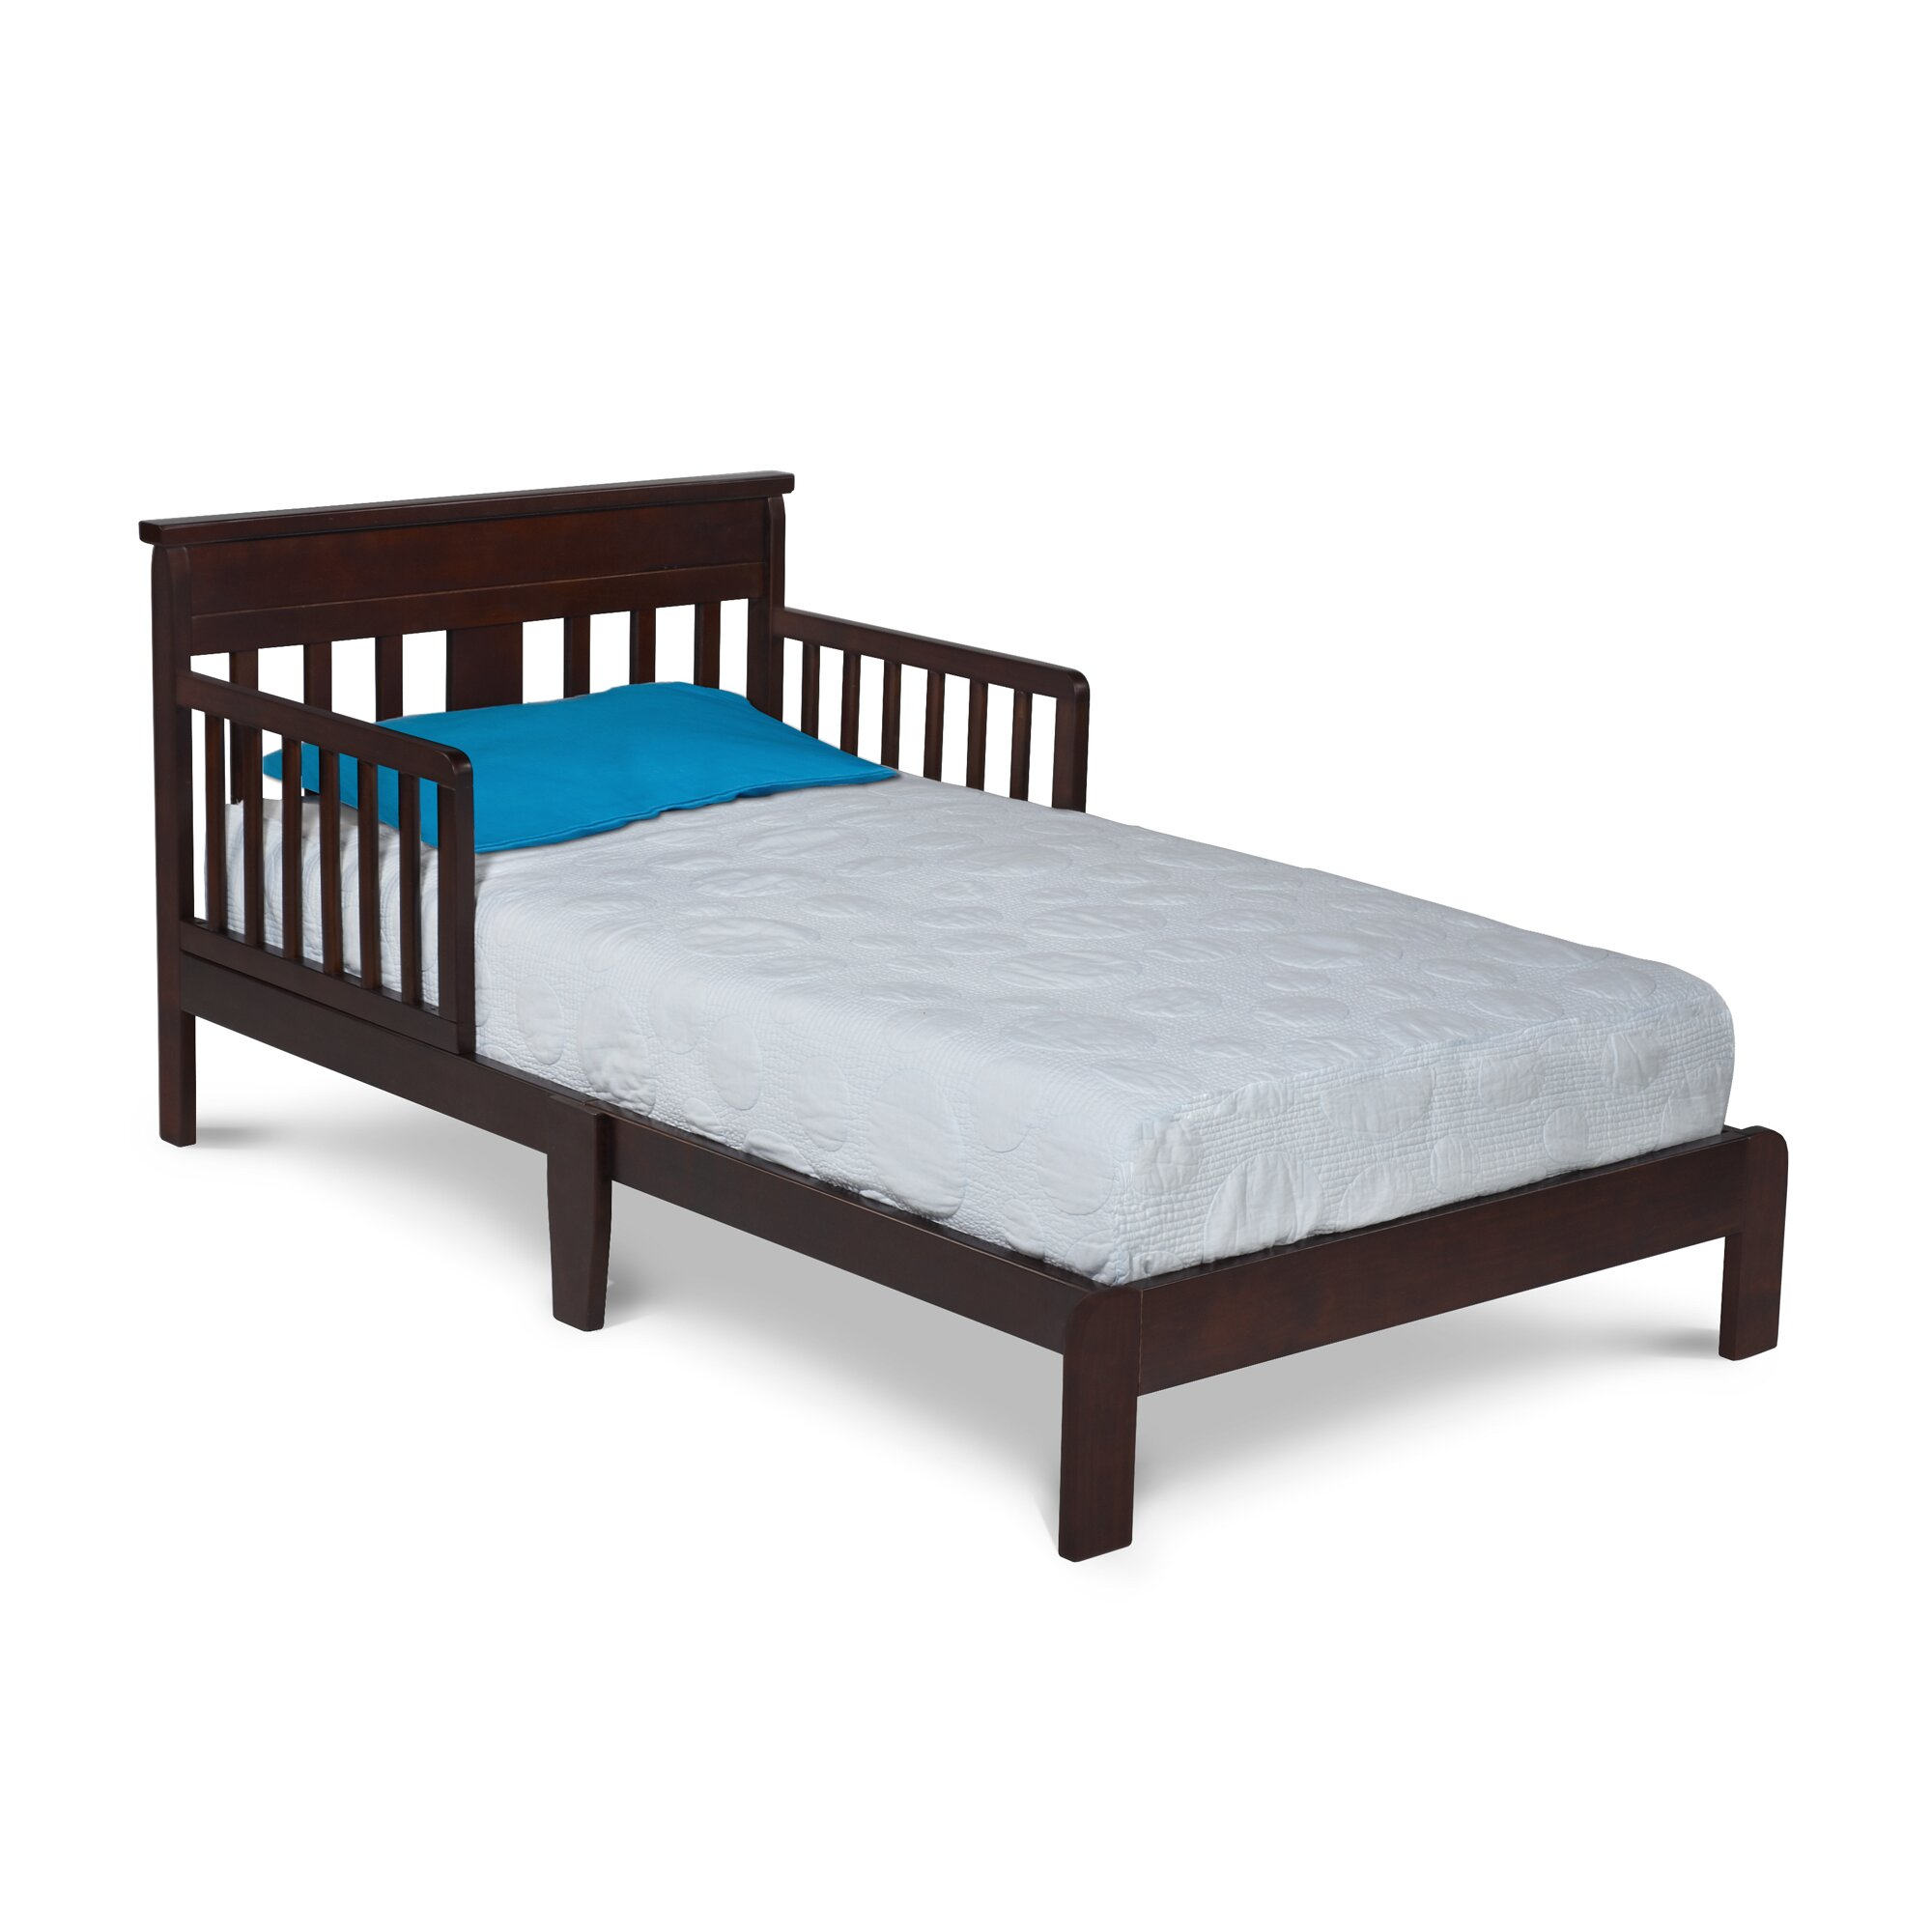 wayfair toddler bed scottsdale convertible toddler bed wayfair 13802